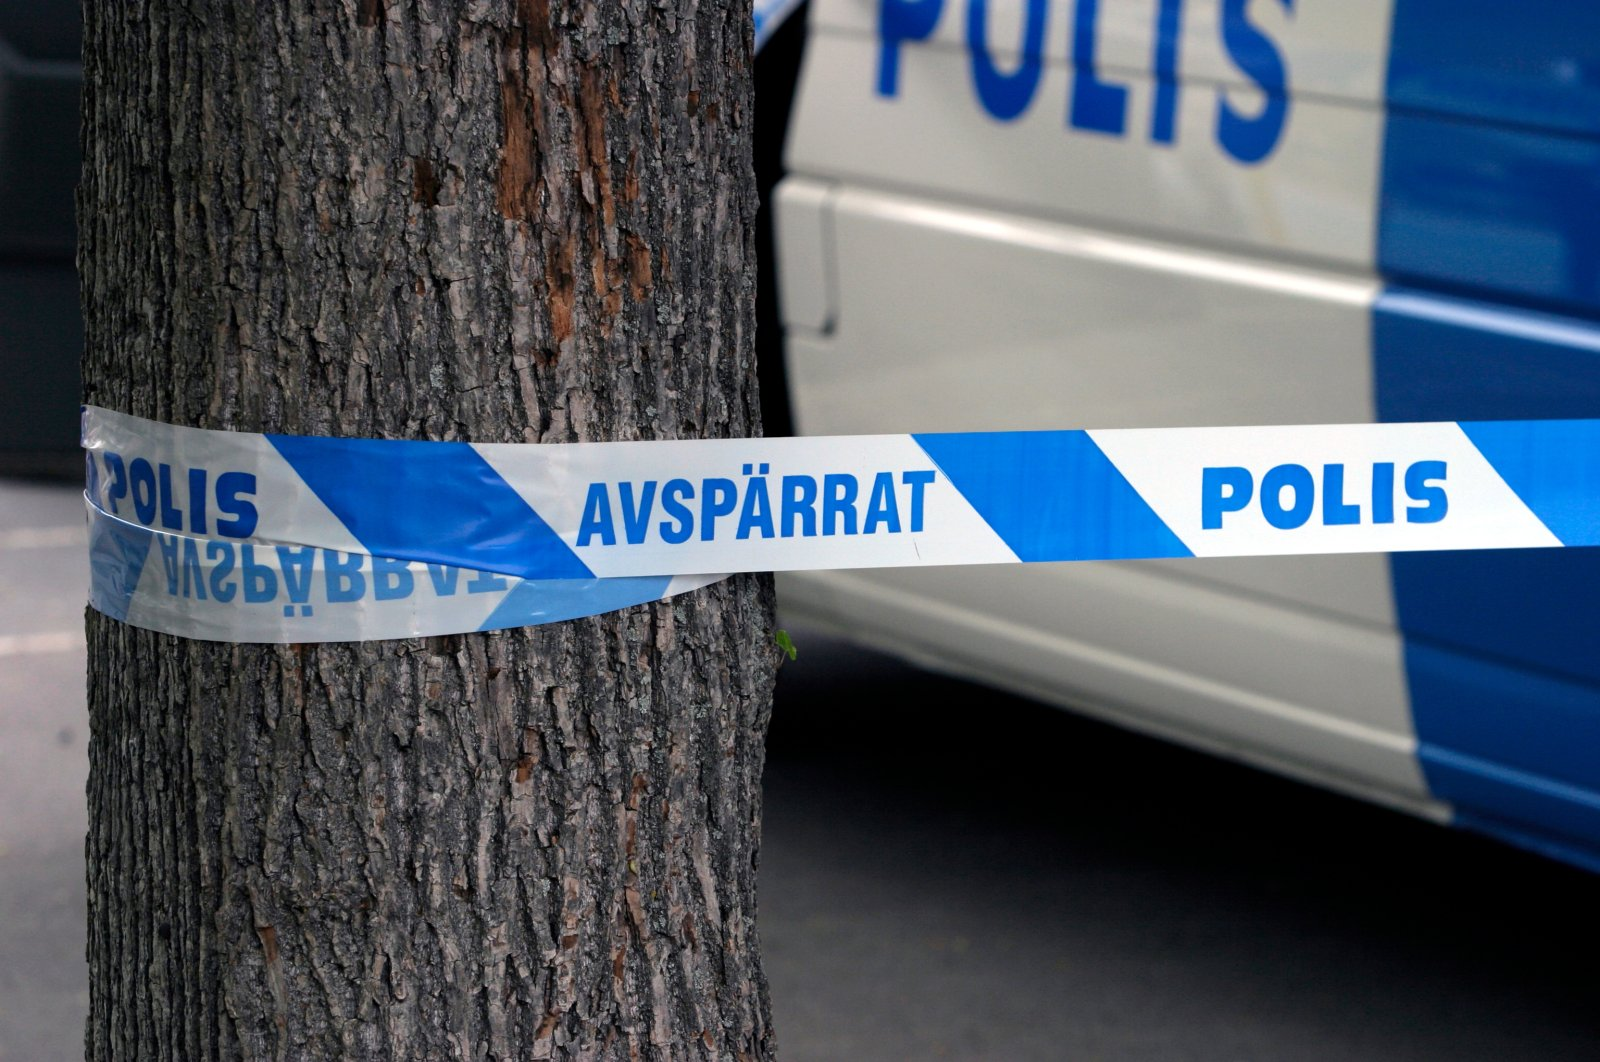 """A Swedish police barricade and a police vehicle are seen in the background at a crime scene in Sweden with the sign reading """"Restricted, police."""" (Shutterstock Photo)"""